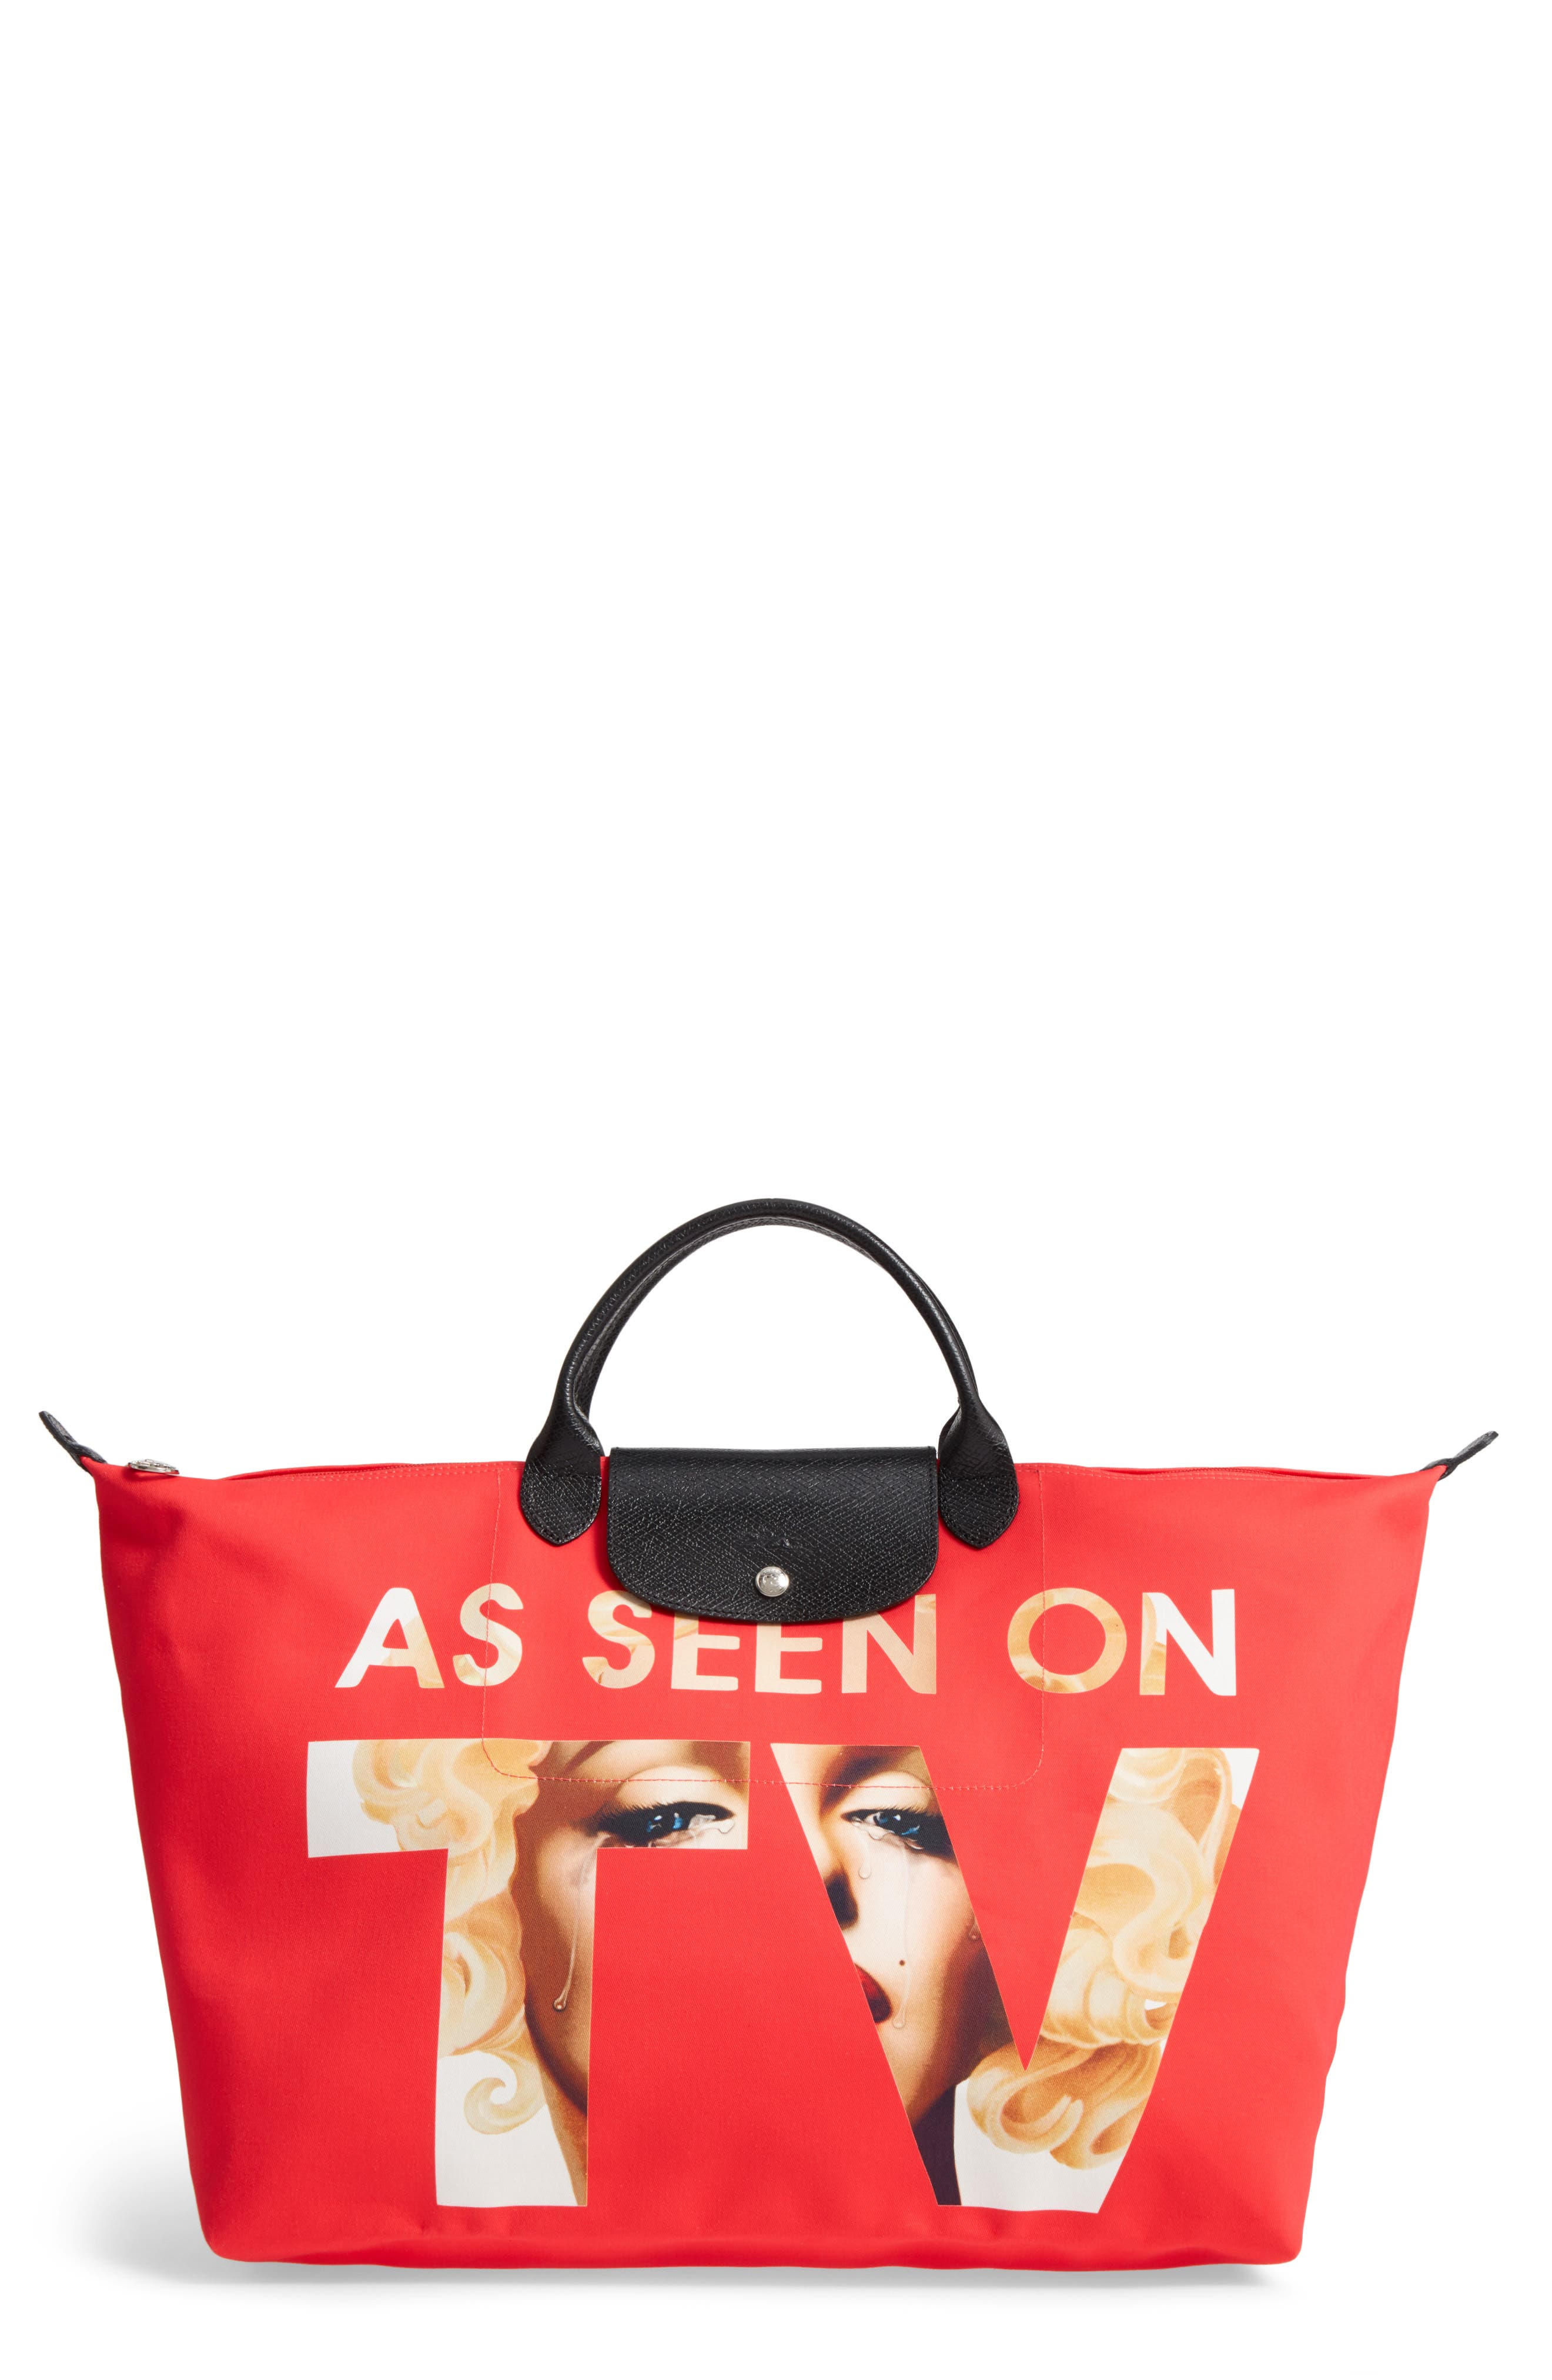 x Jeremy Scott As Seen on TV Tote,                         Main,                         color, Red